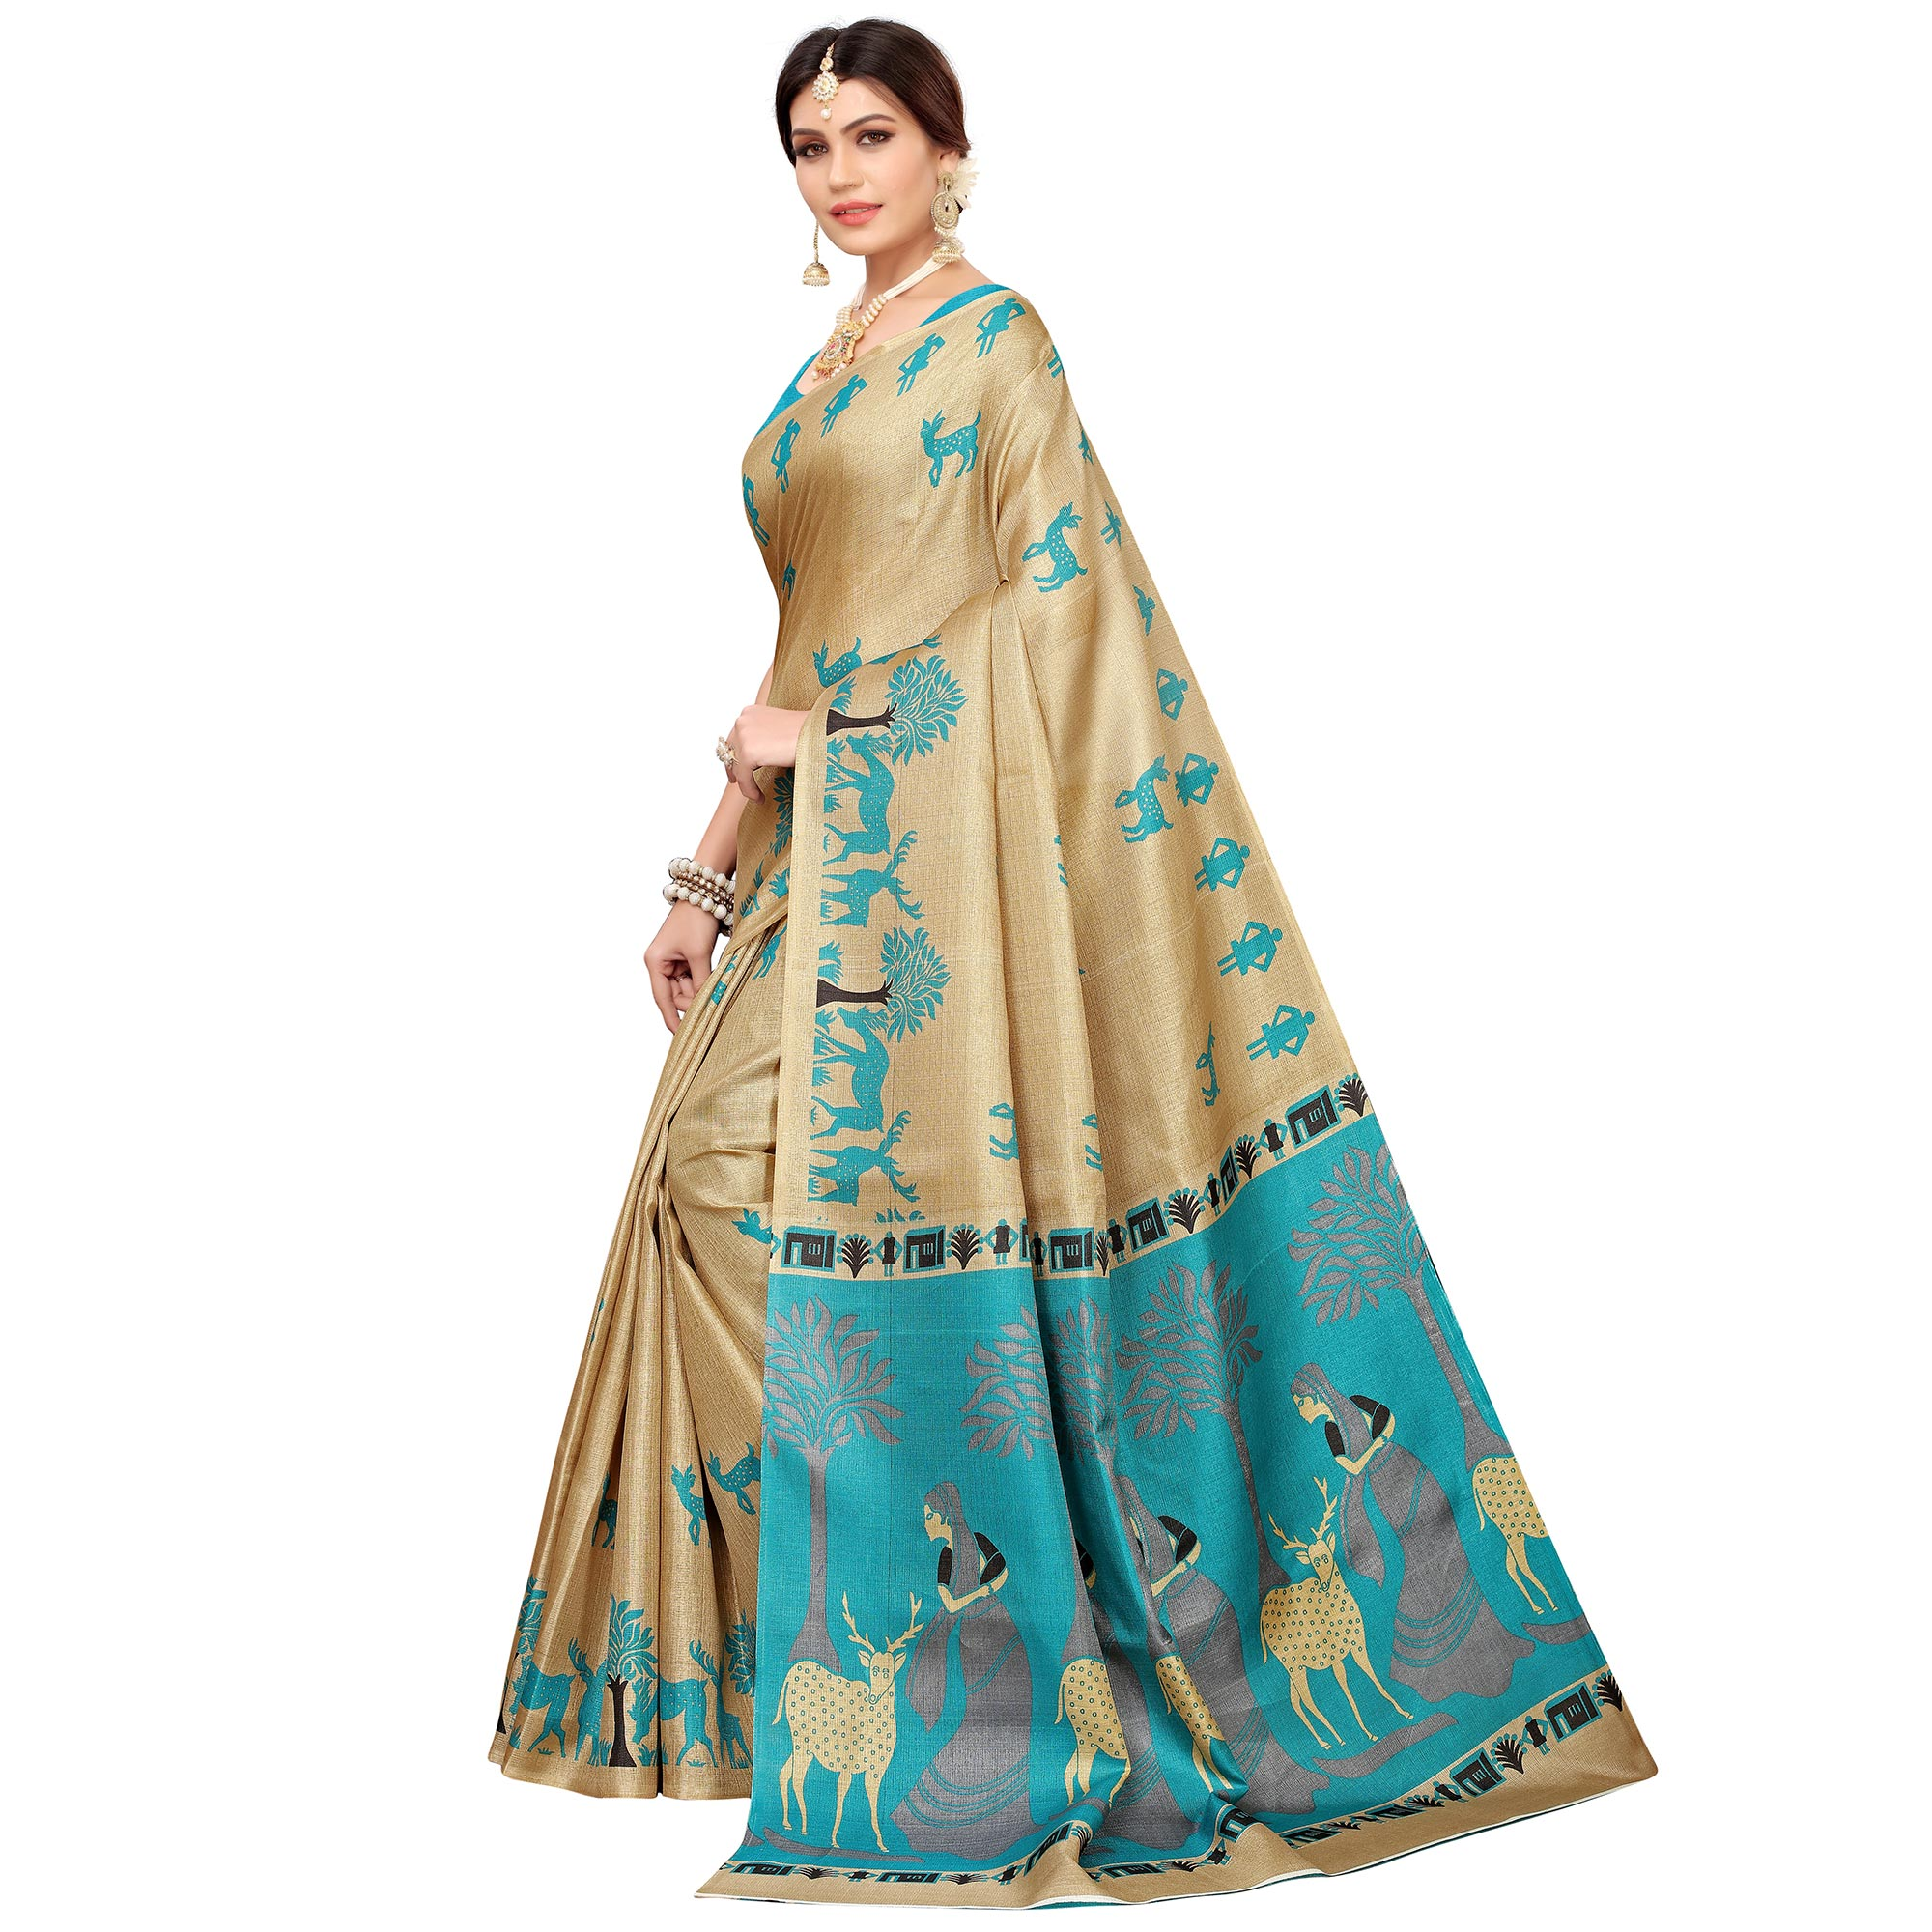 Pleasant Beige-Turquoise Blue Colored Casual Printed Khadi Silk Saree